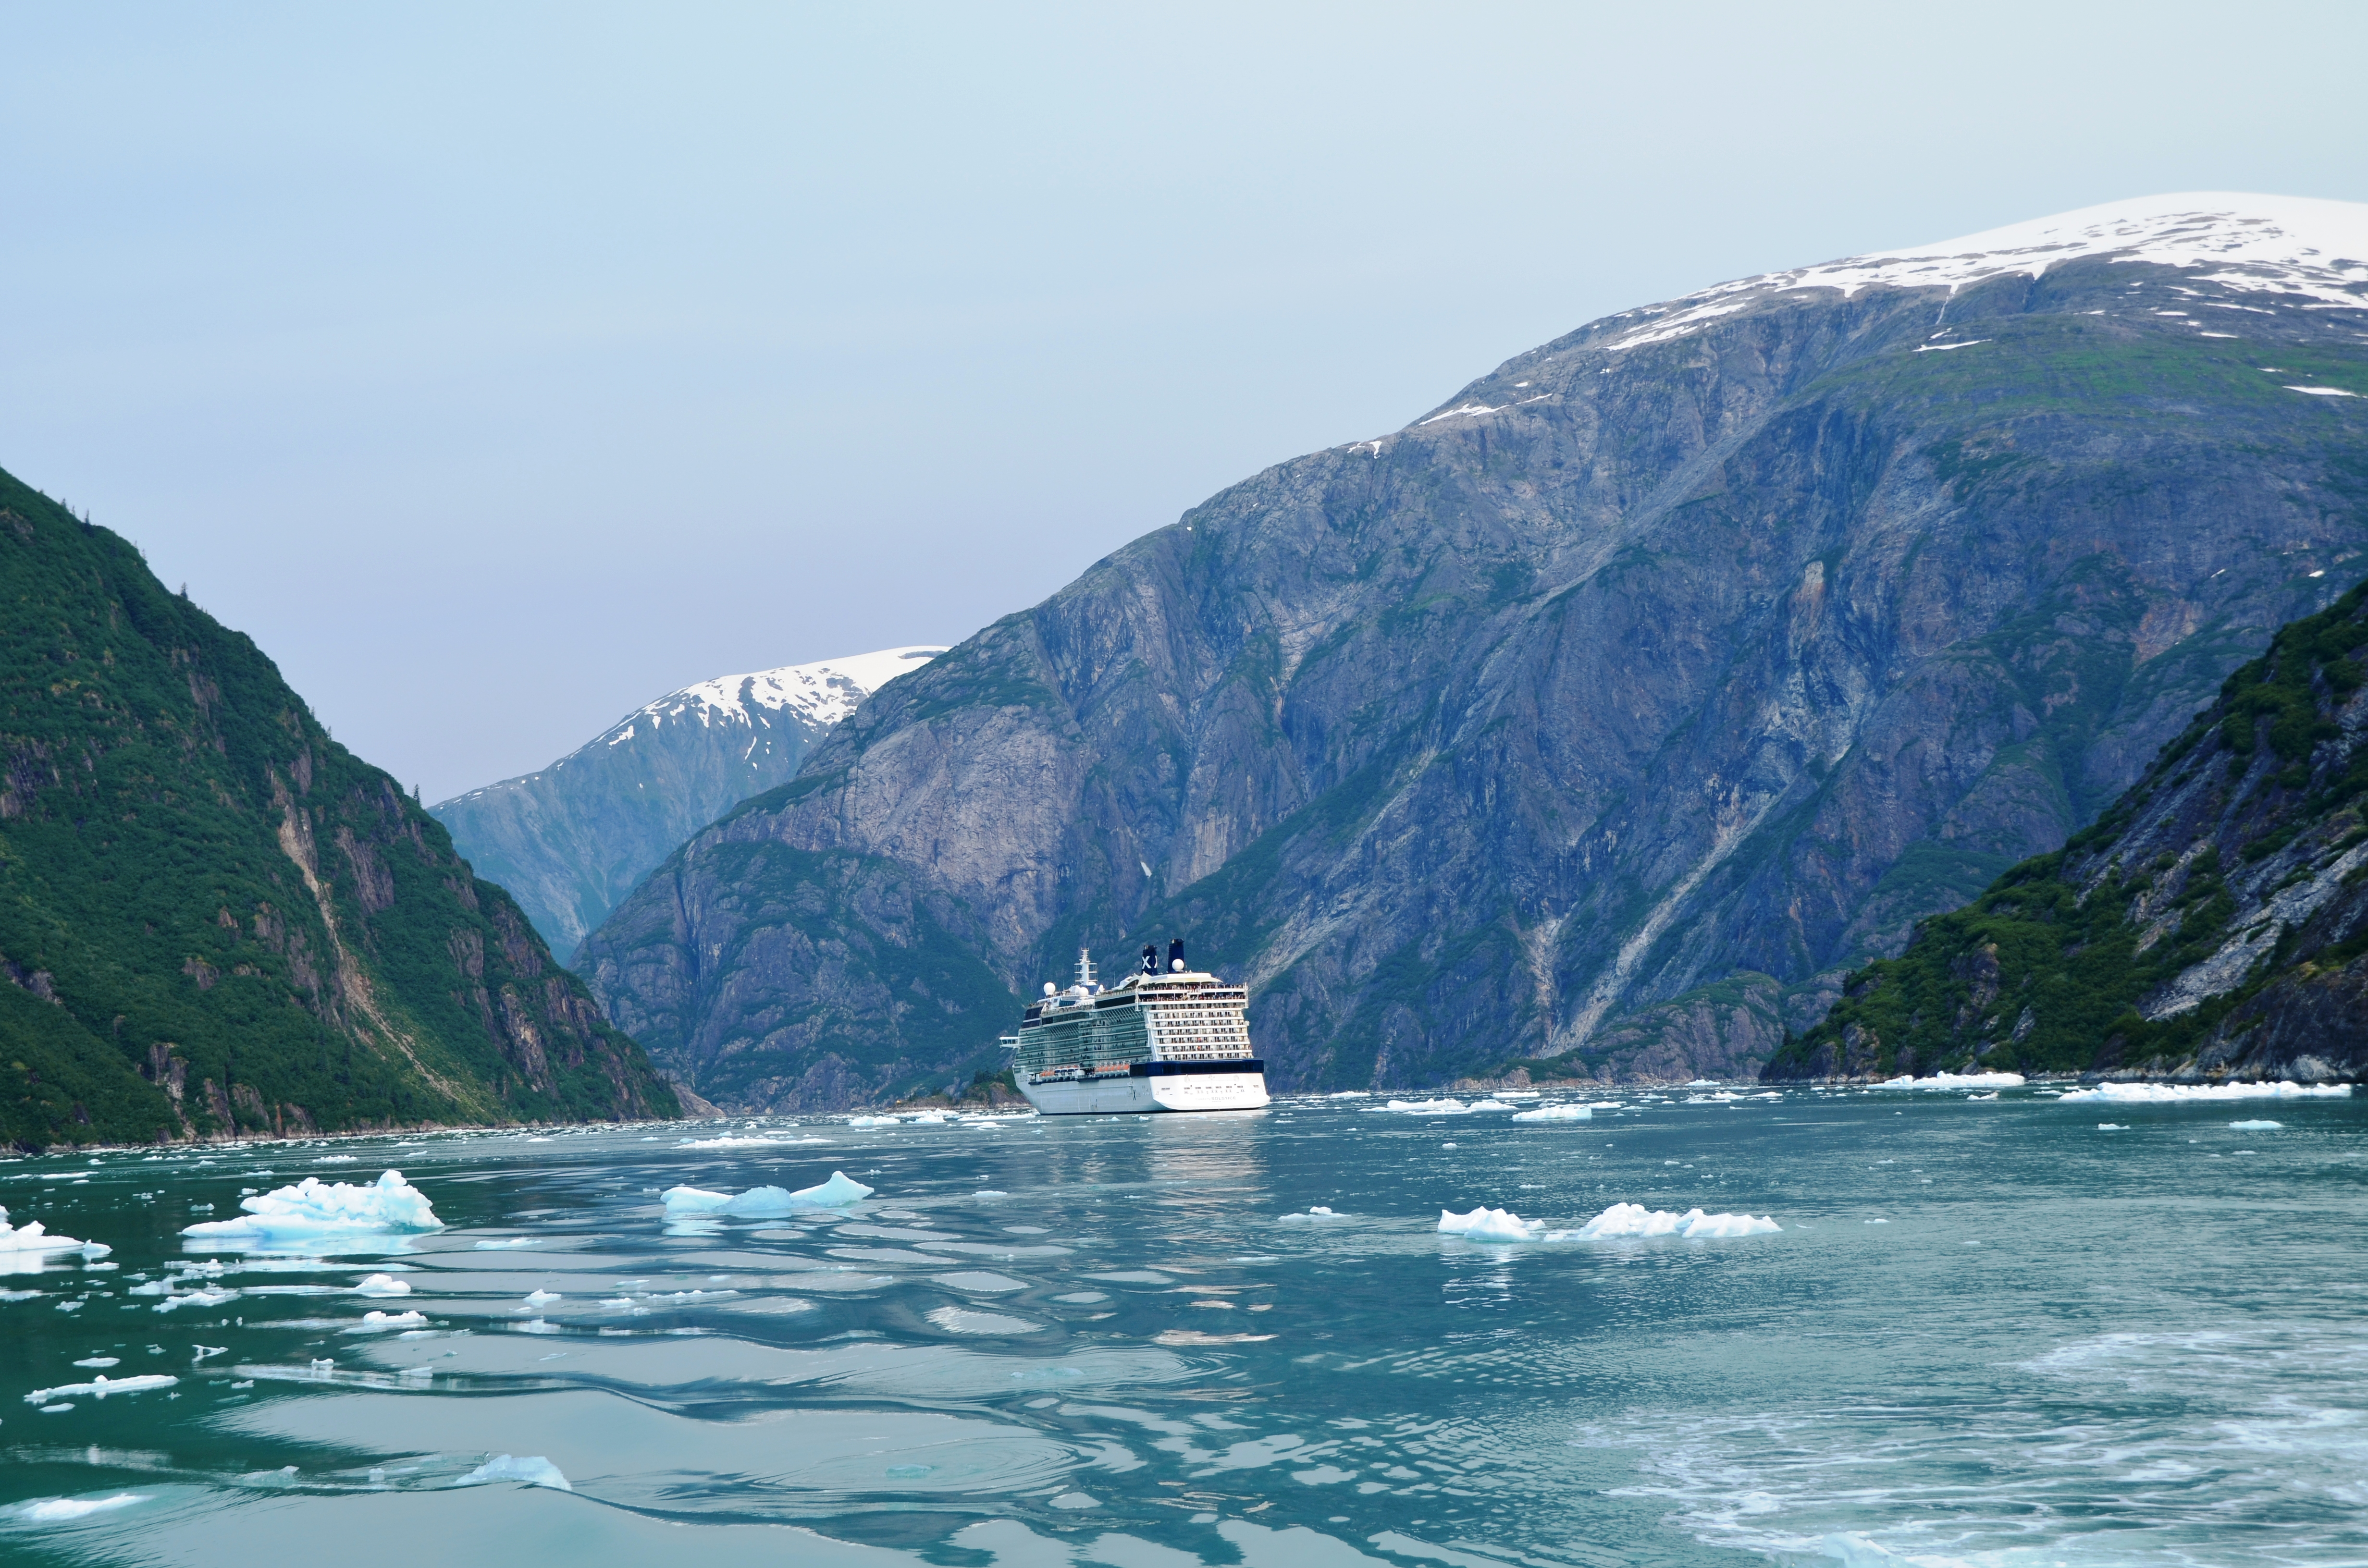 Tracy Arm Fjord, Alaska - Alaska Cruises and 2018 Alaska ...